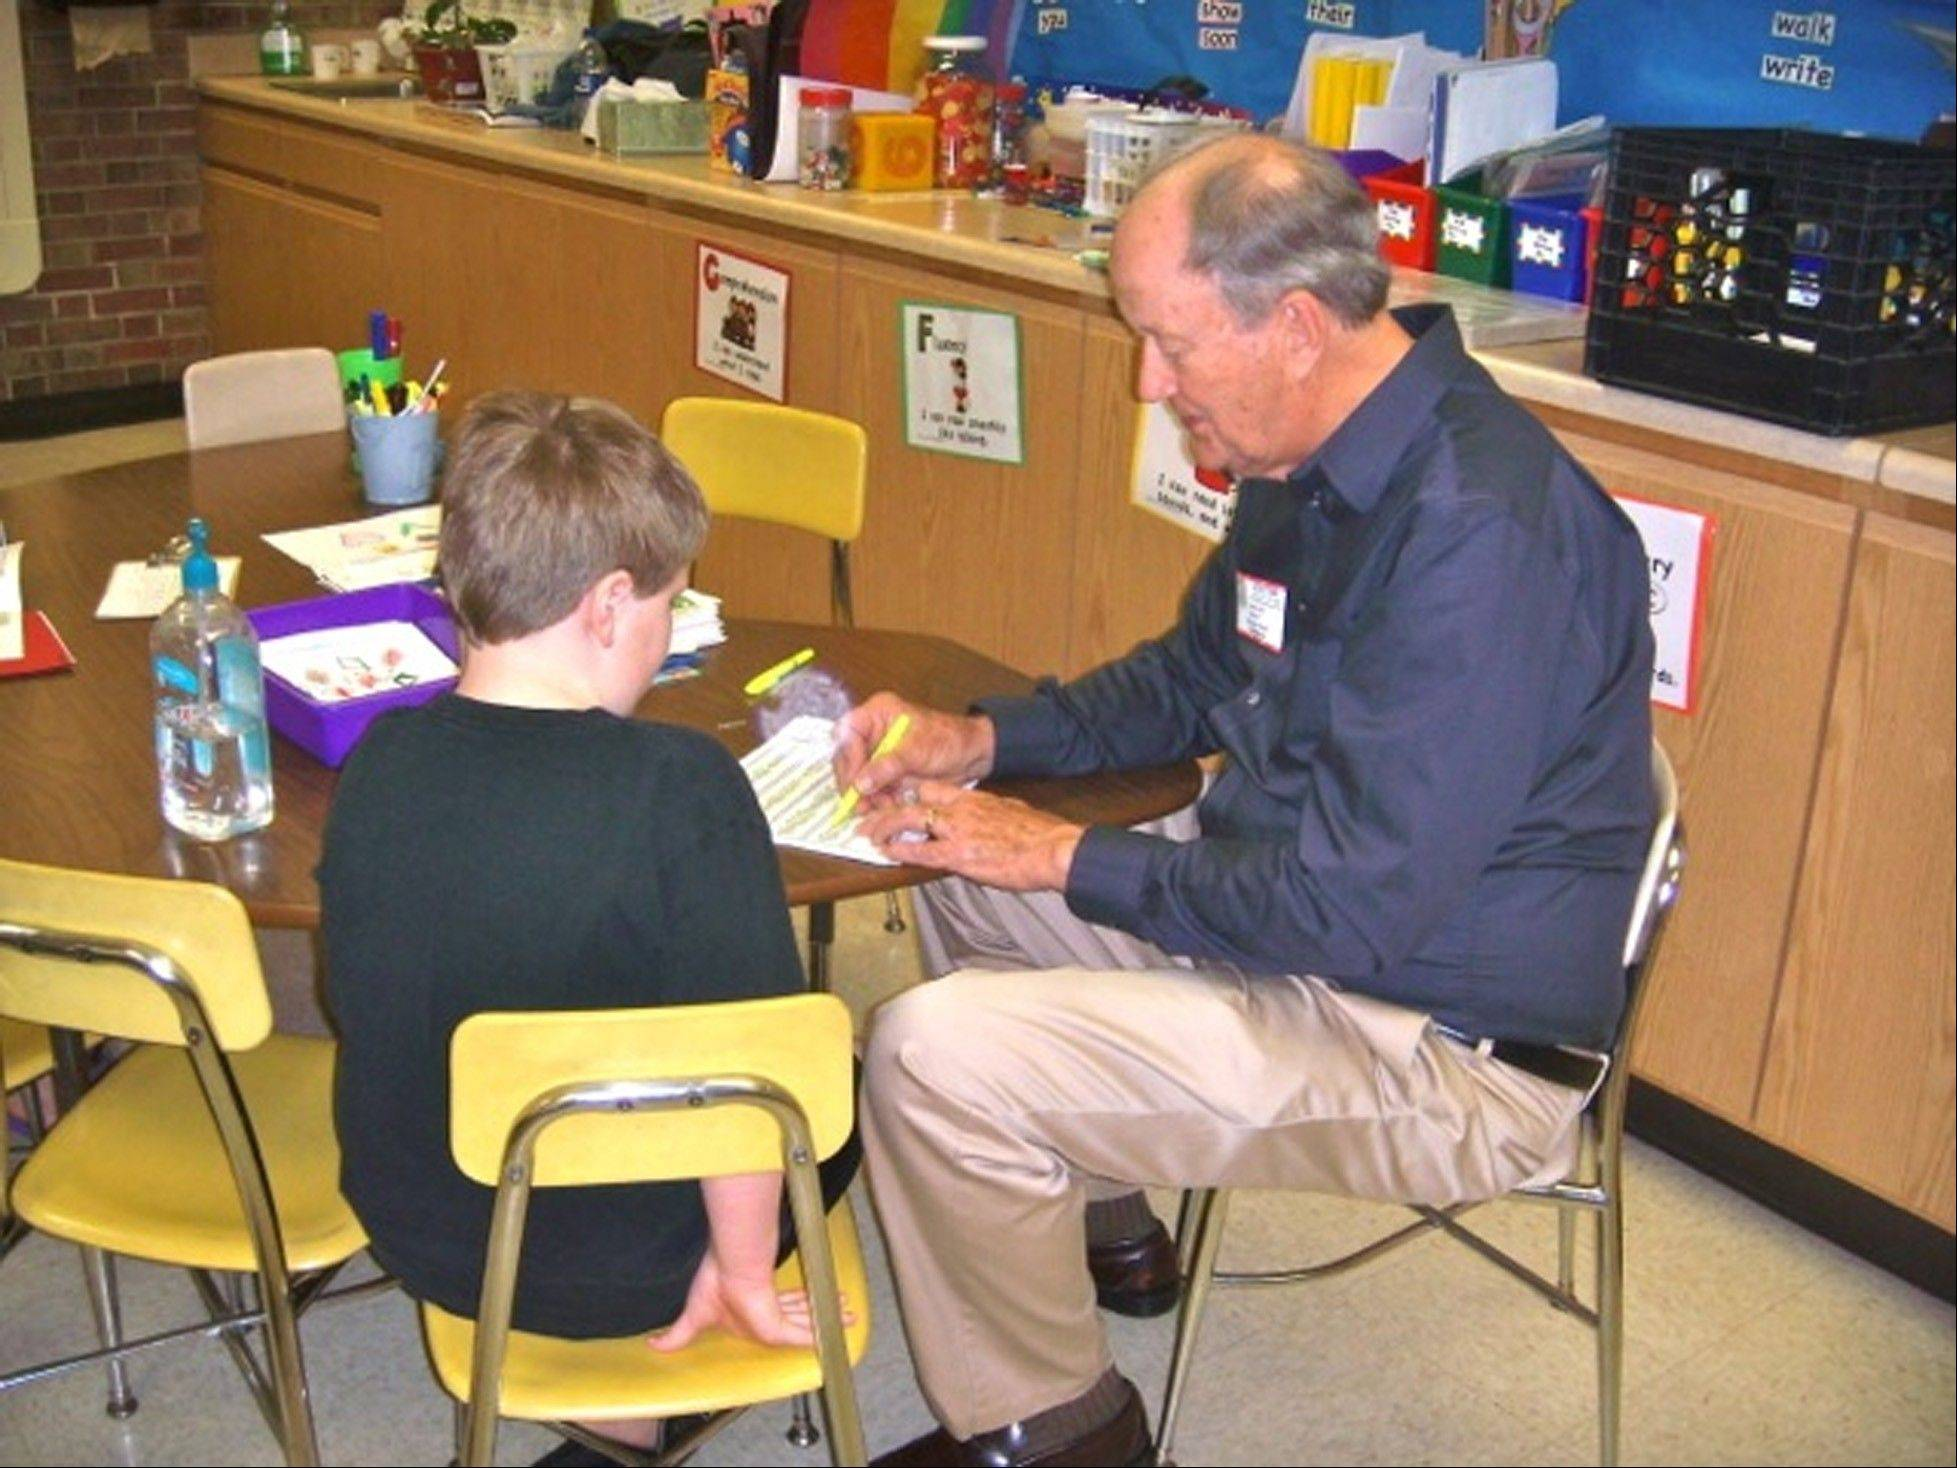 The Rev. Jim Ilten of Lombard officially retired in 1997, but hasn't stopped working yet. He continues to minister to seniors in several communities and recently started working with Project Tutor at Schafer School in Lombard, helping first-graders every Tuesday morning.